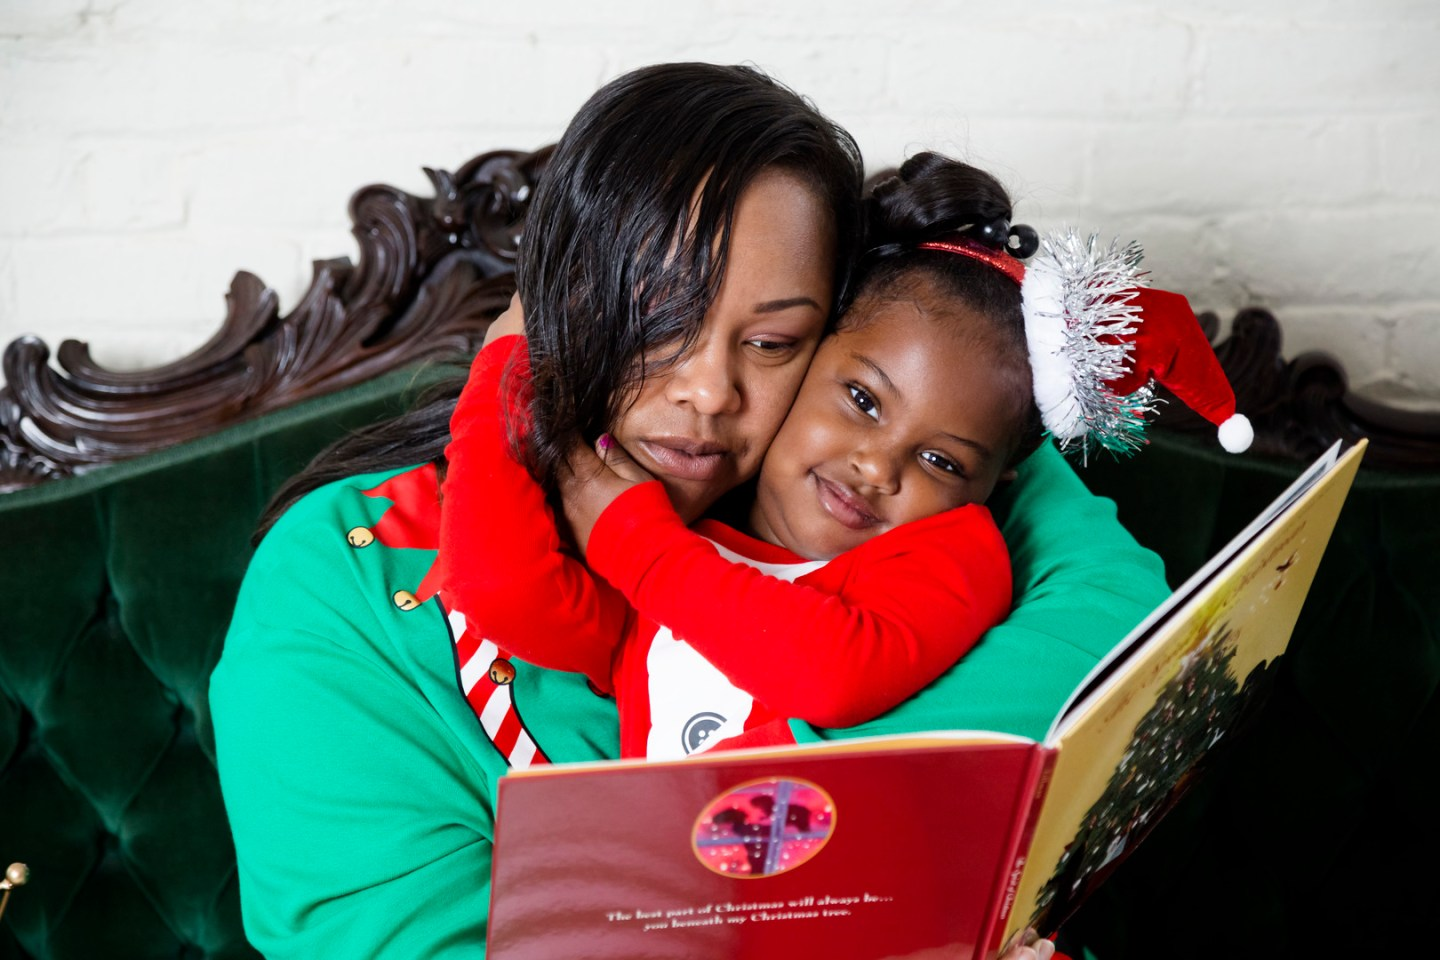 ytyzvi37hb54dtm9y005_big Mommy & Me Christmas PJ Session in Greensboro, NC